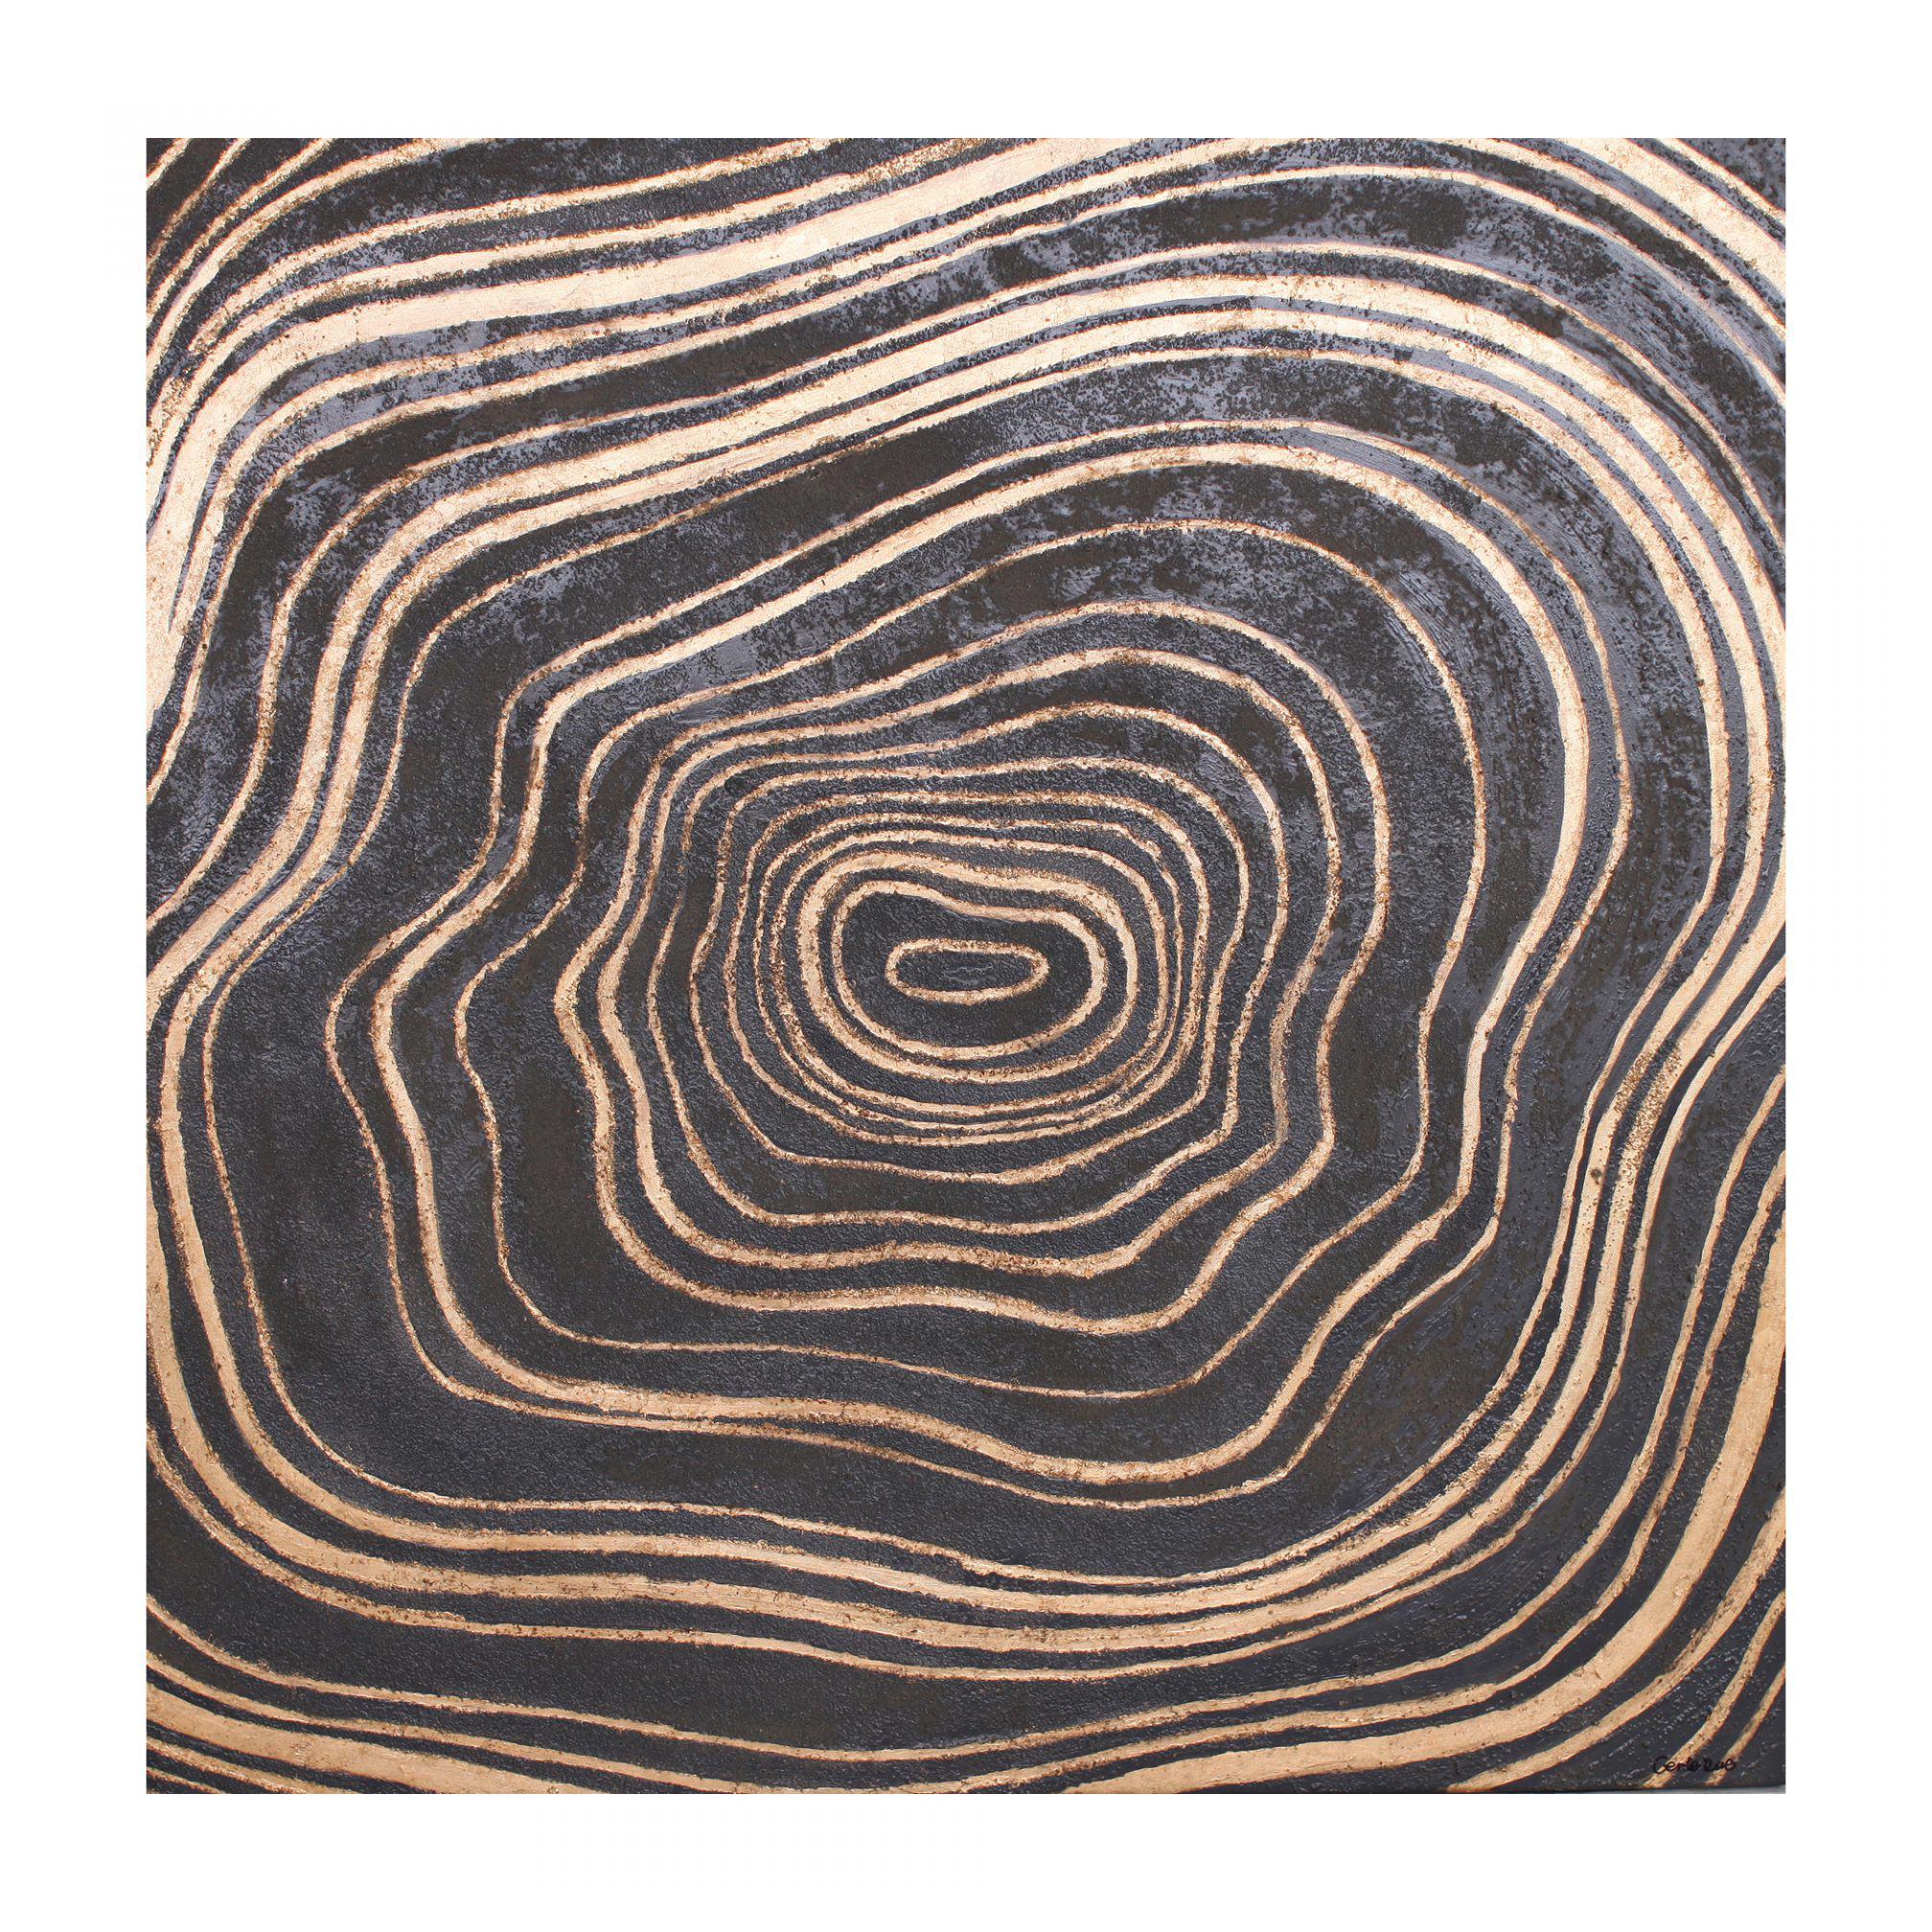 Widely Used Tree Rings Wall Decor – Peter Corvallis Productions Within Rings Wall Decor (Gallery 12 of 20)